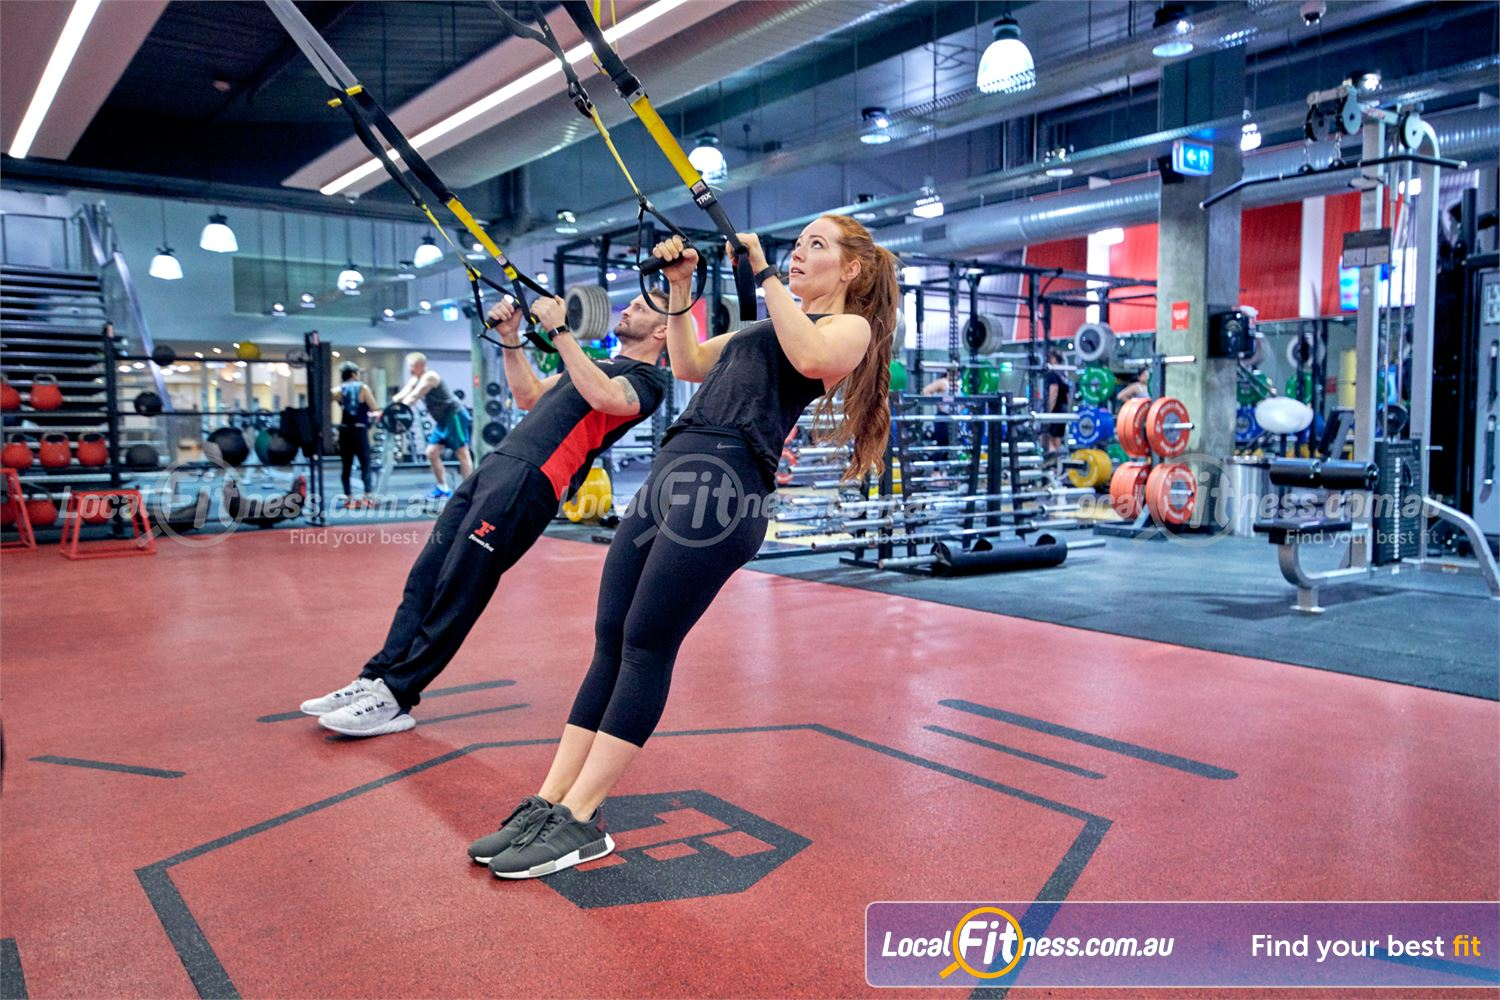 Fitness First Parramatta Improve your stability and strength with TRX training.